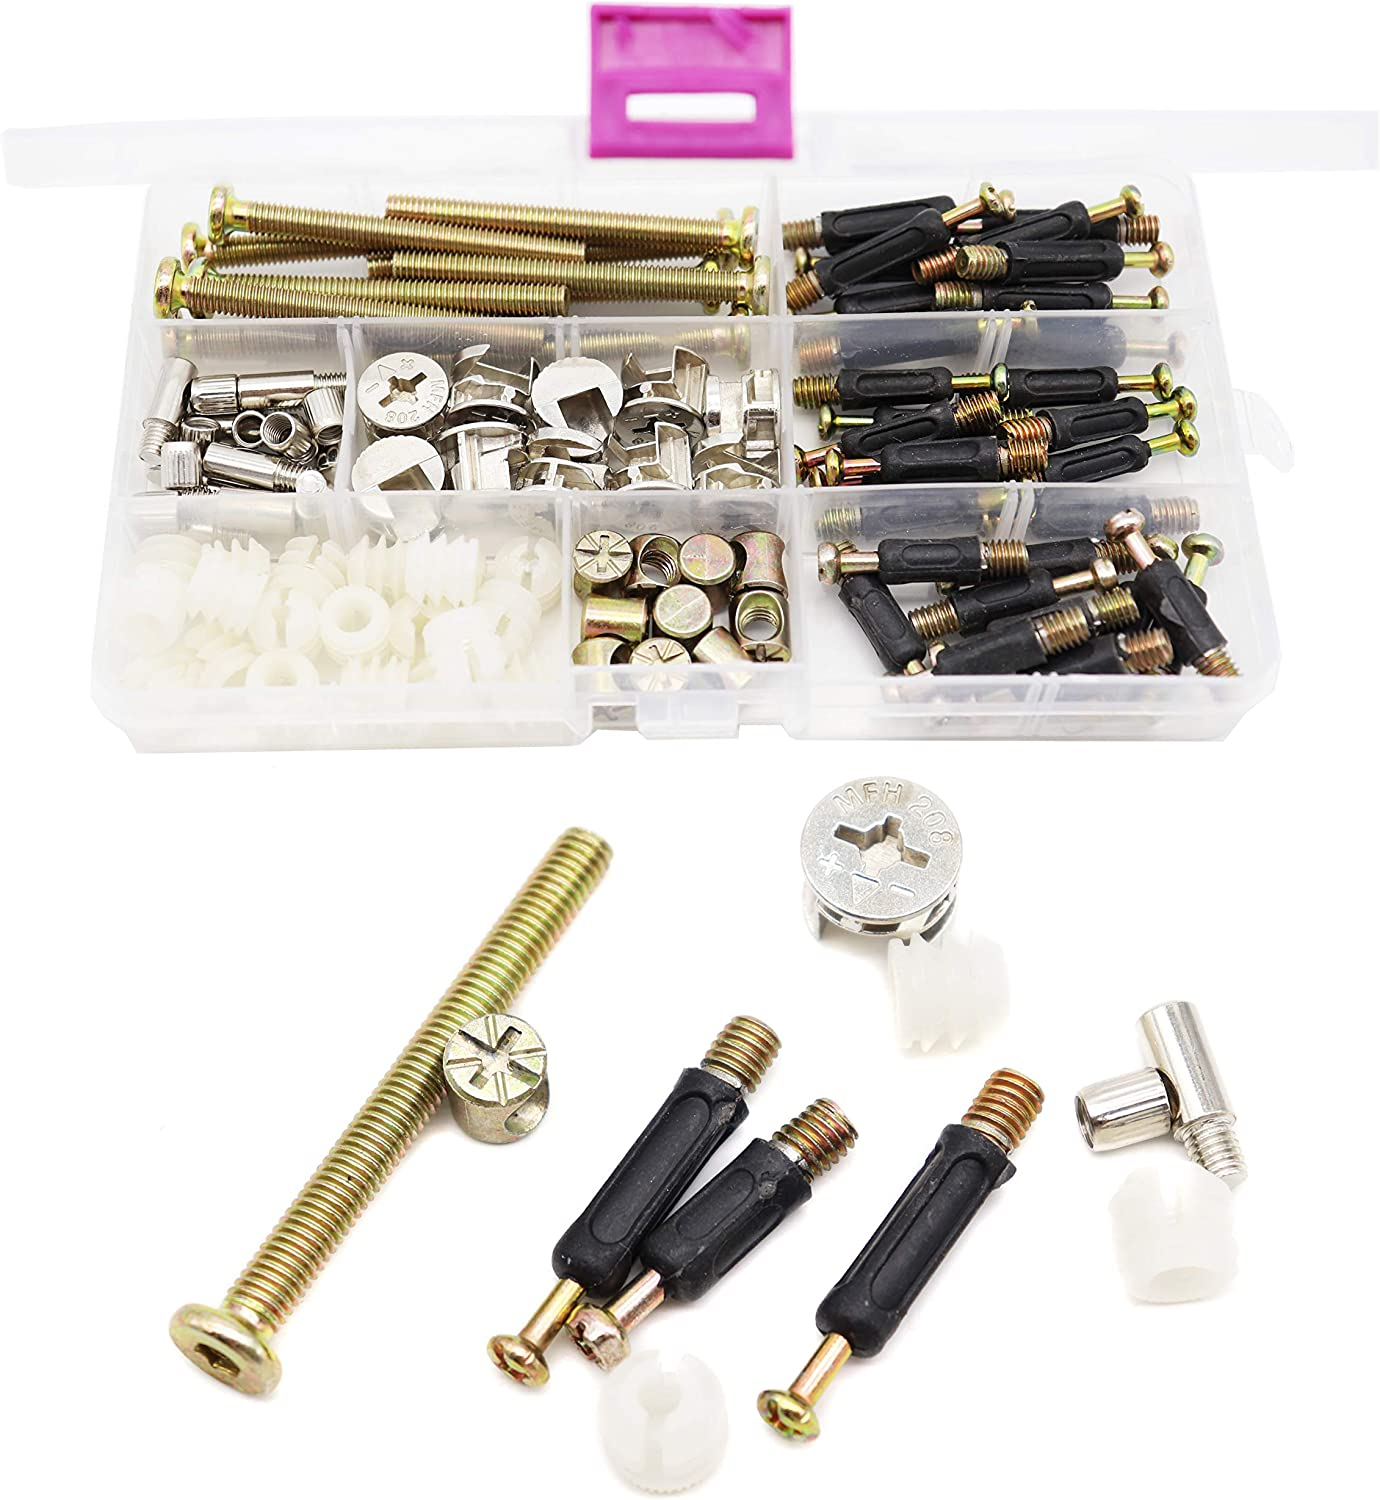 binifiMux 90pcs Crib Screws Furniture Connection Screws Nuts Assortment Kit,Hex Socket Cap Screws/Cam Fitting/Dowel/Pre-Inserte for Cabinets Cupboards Chairs Boards Headboards